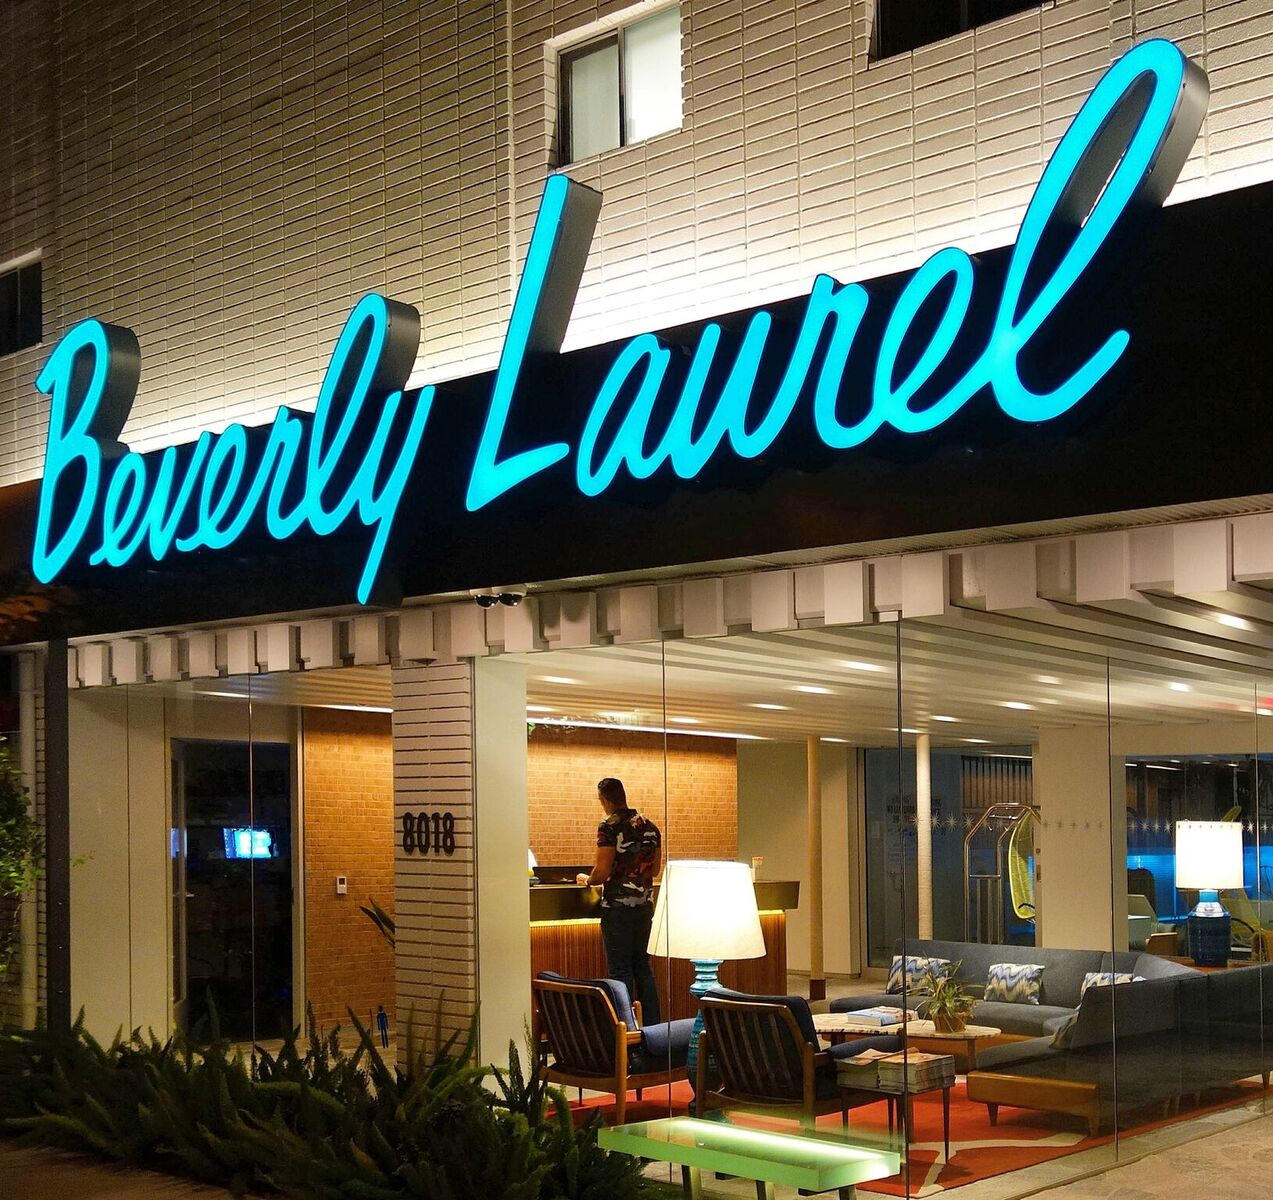 Beverly Laurel Hotel